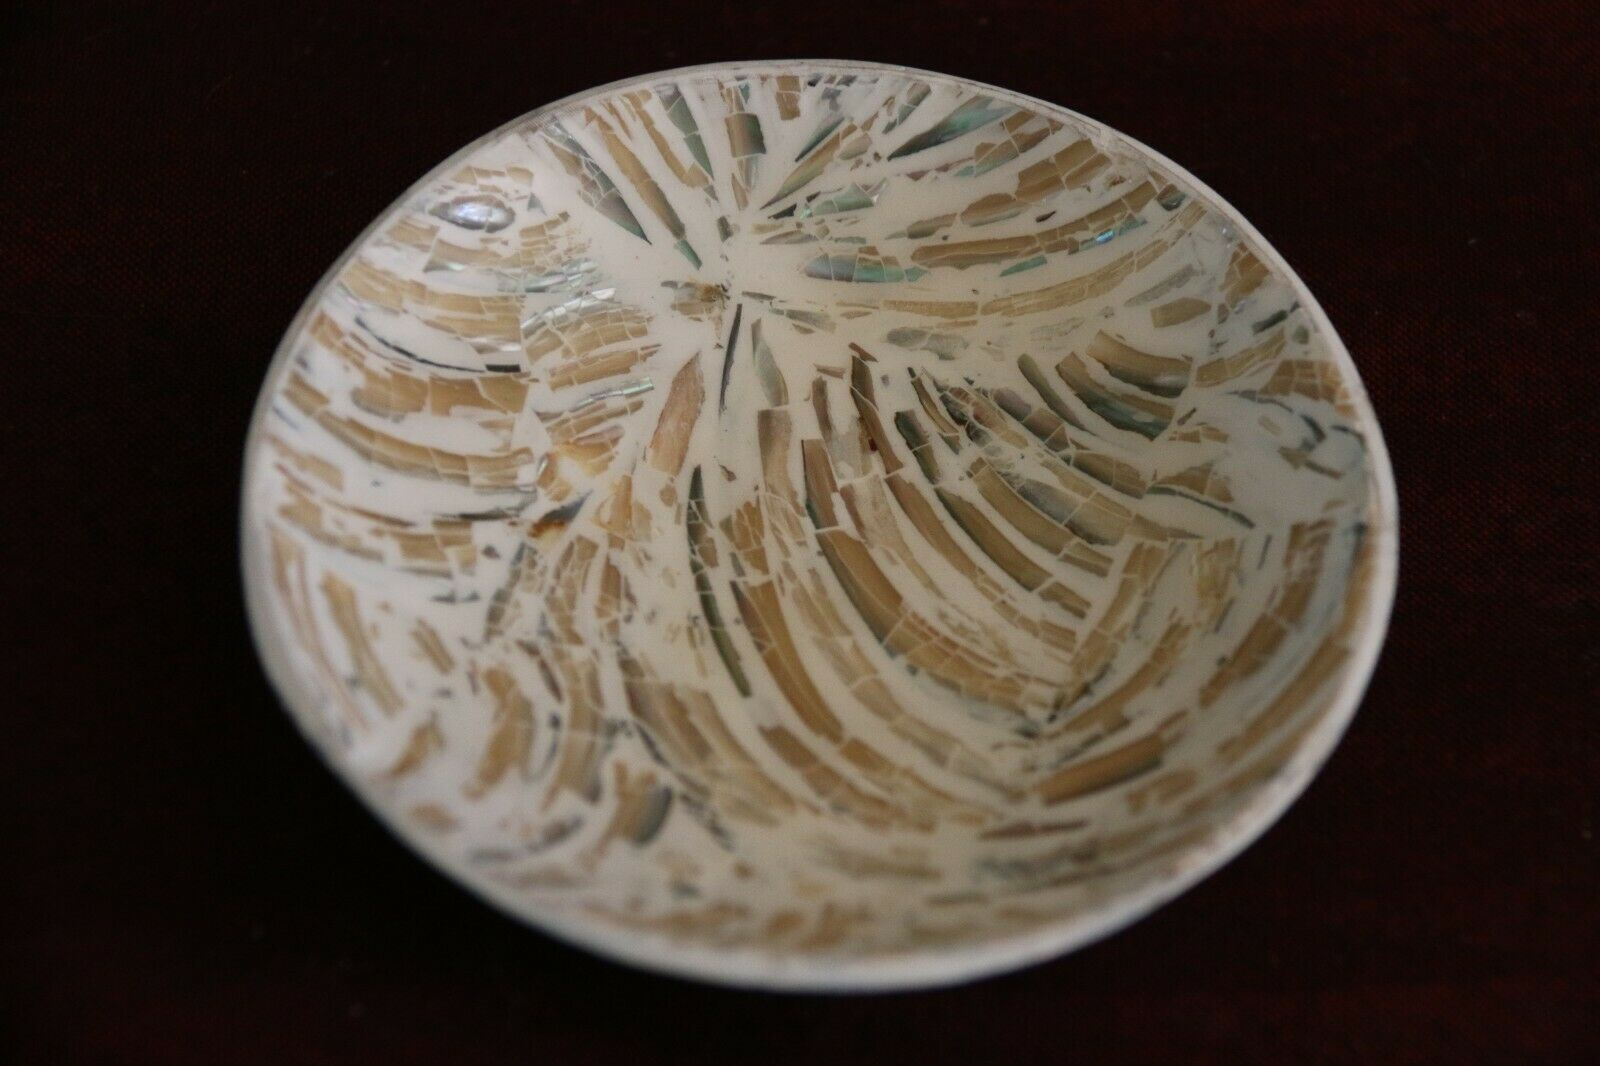 NEW Balinese Hand Crafted Resin/Shell Bowl - Bali Dip / Dipping Sauce Bowl